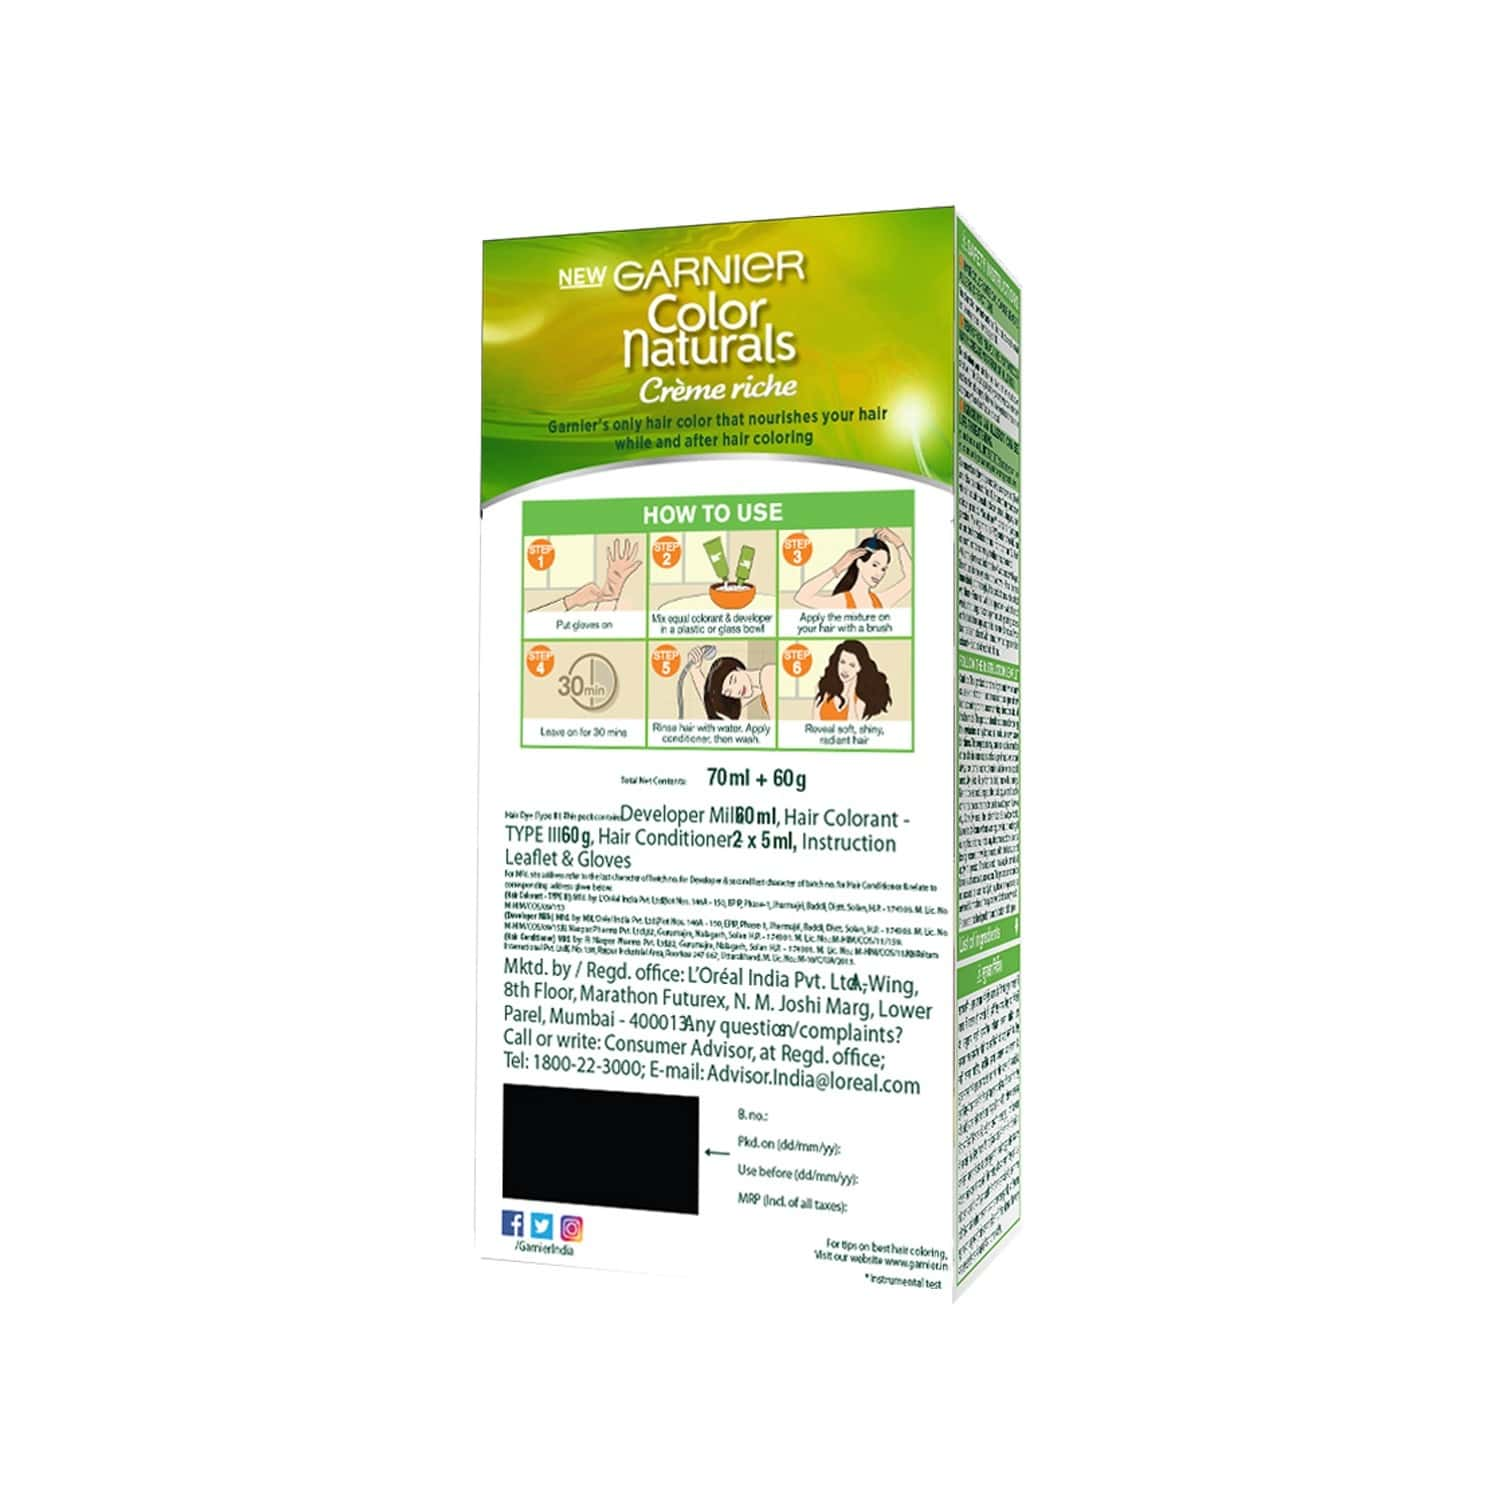 Garnier Color Naturals CrÈme Shade 4 Brown (70ml + 60g) Hair Color Box Of 130 Ml